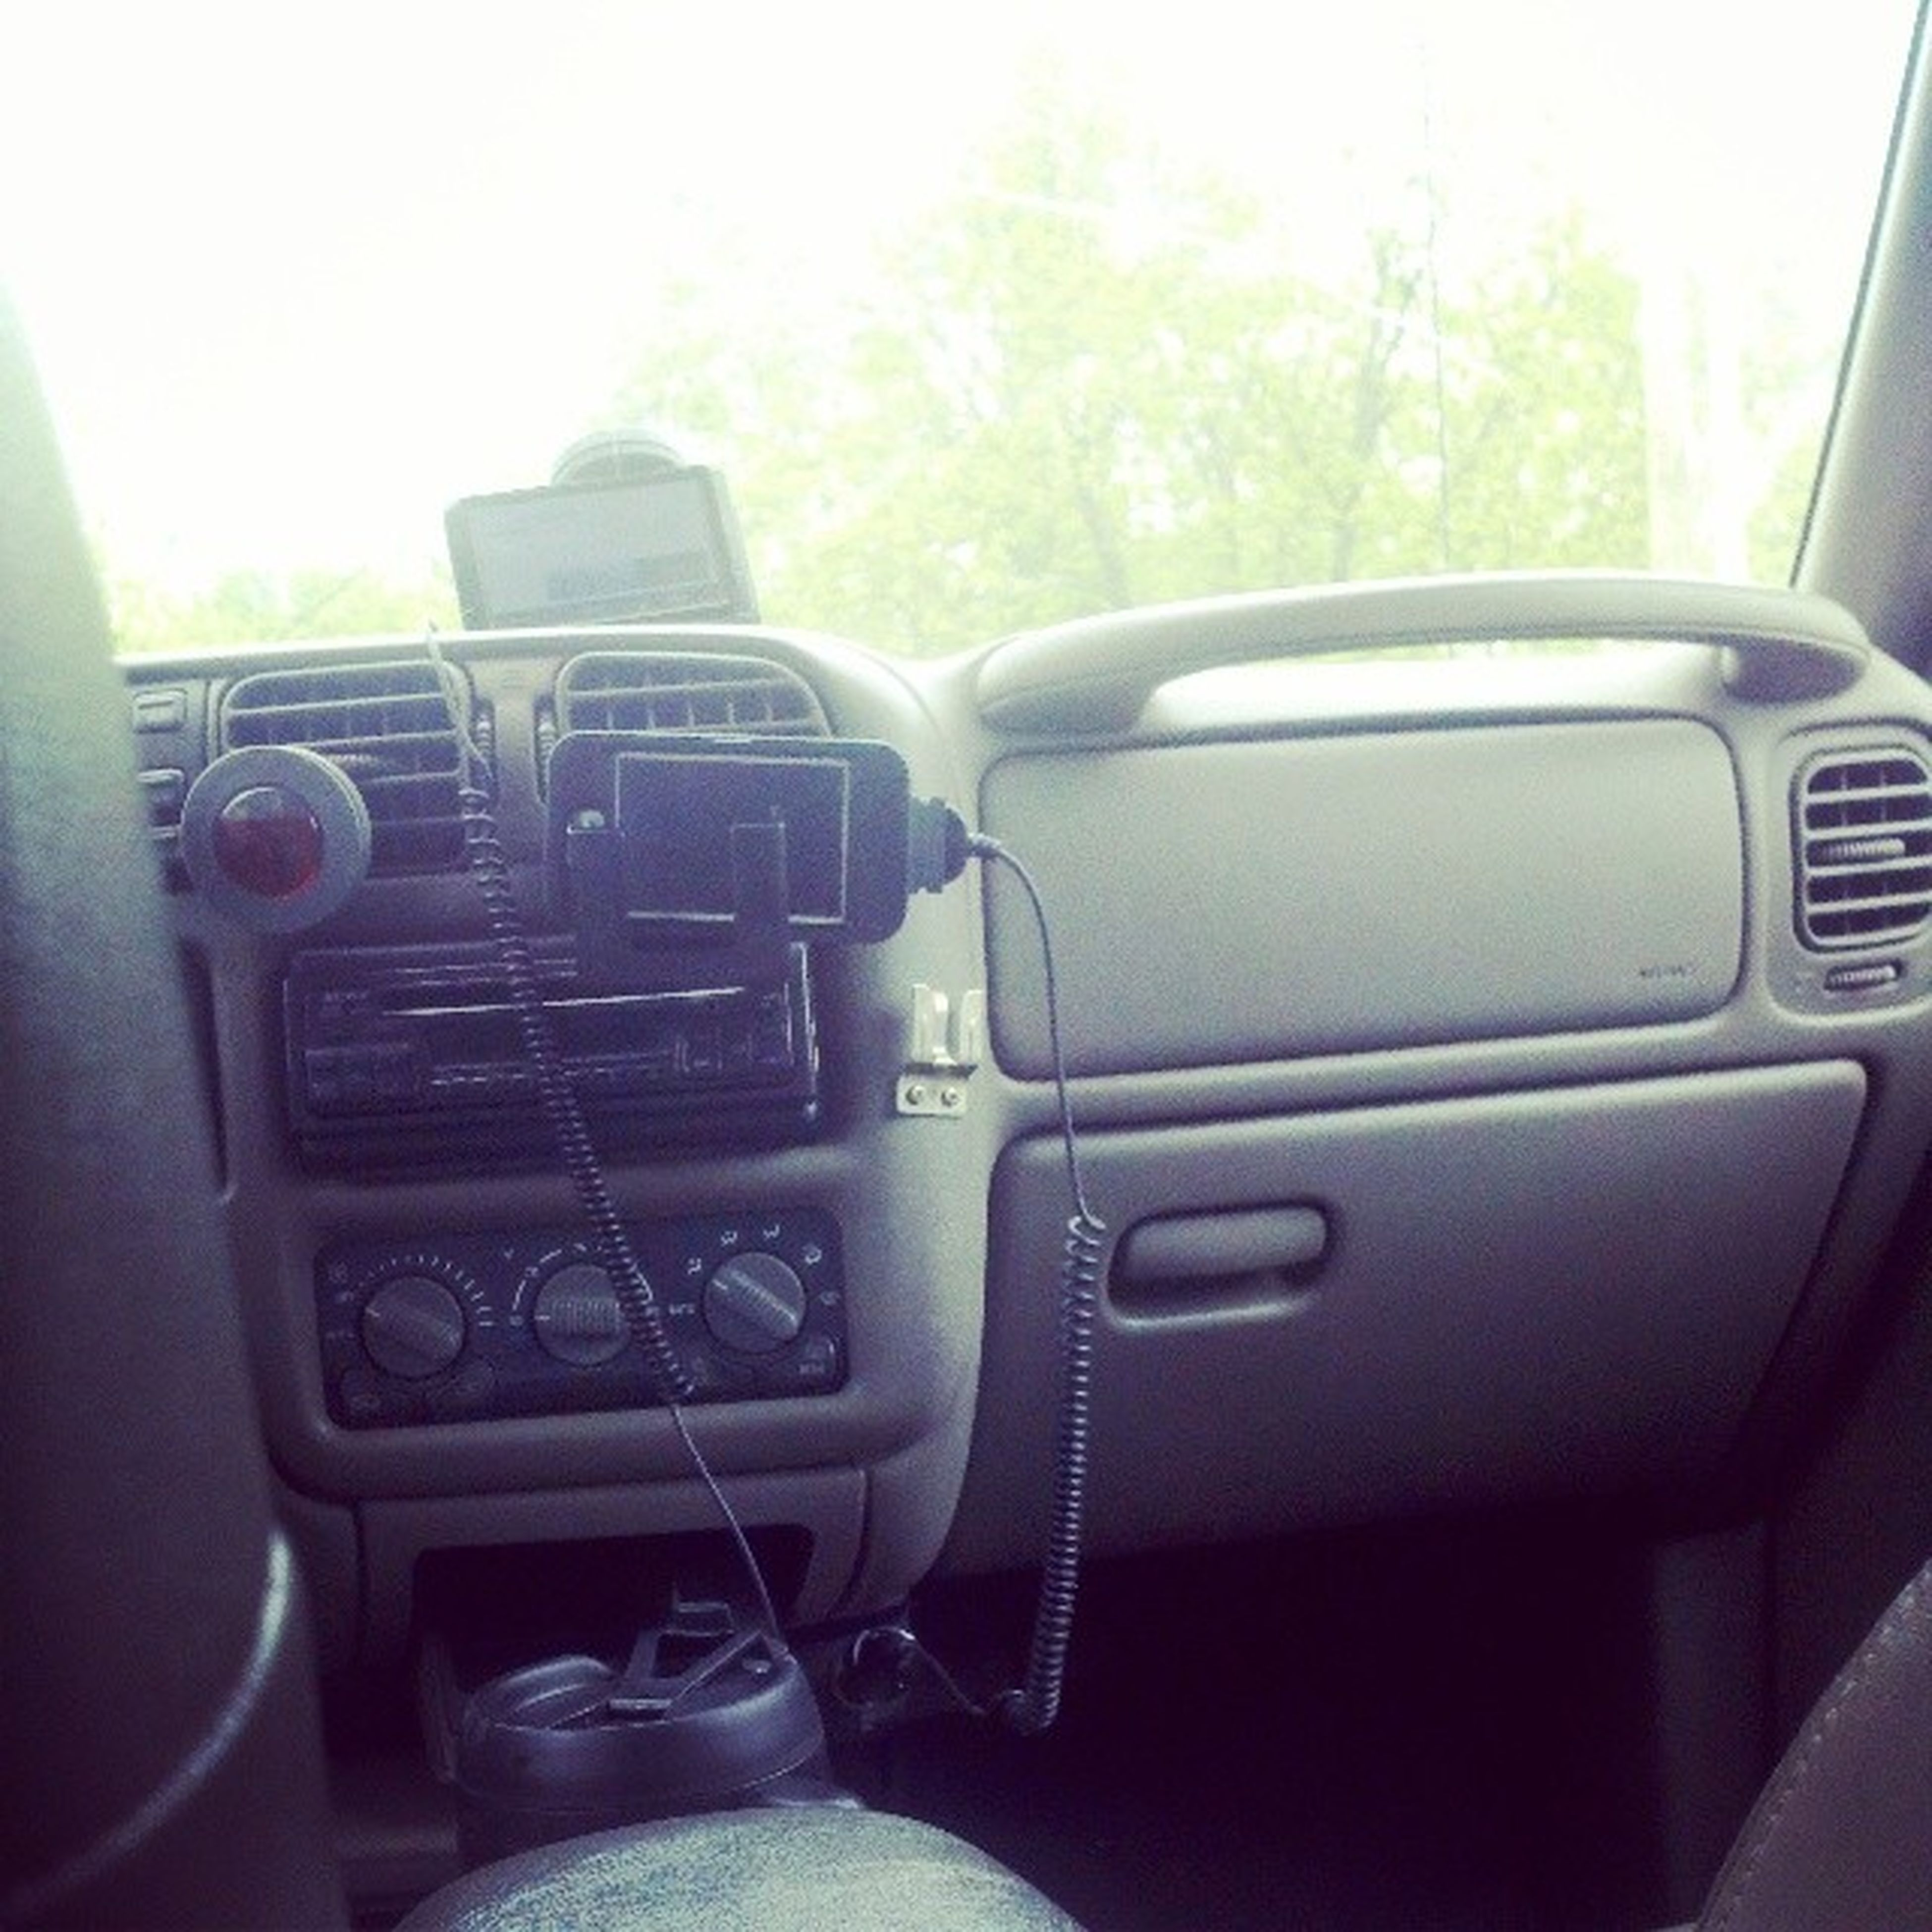 transportation, mode of transport, car, land vehicle, vehicle interior, travel, car interior, close-up, day, vehicle seat, vehicle, steering wheel, stationary, technology, no people, part of, journey, windshield, sunlight, indoors